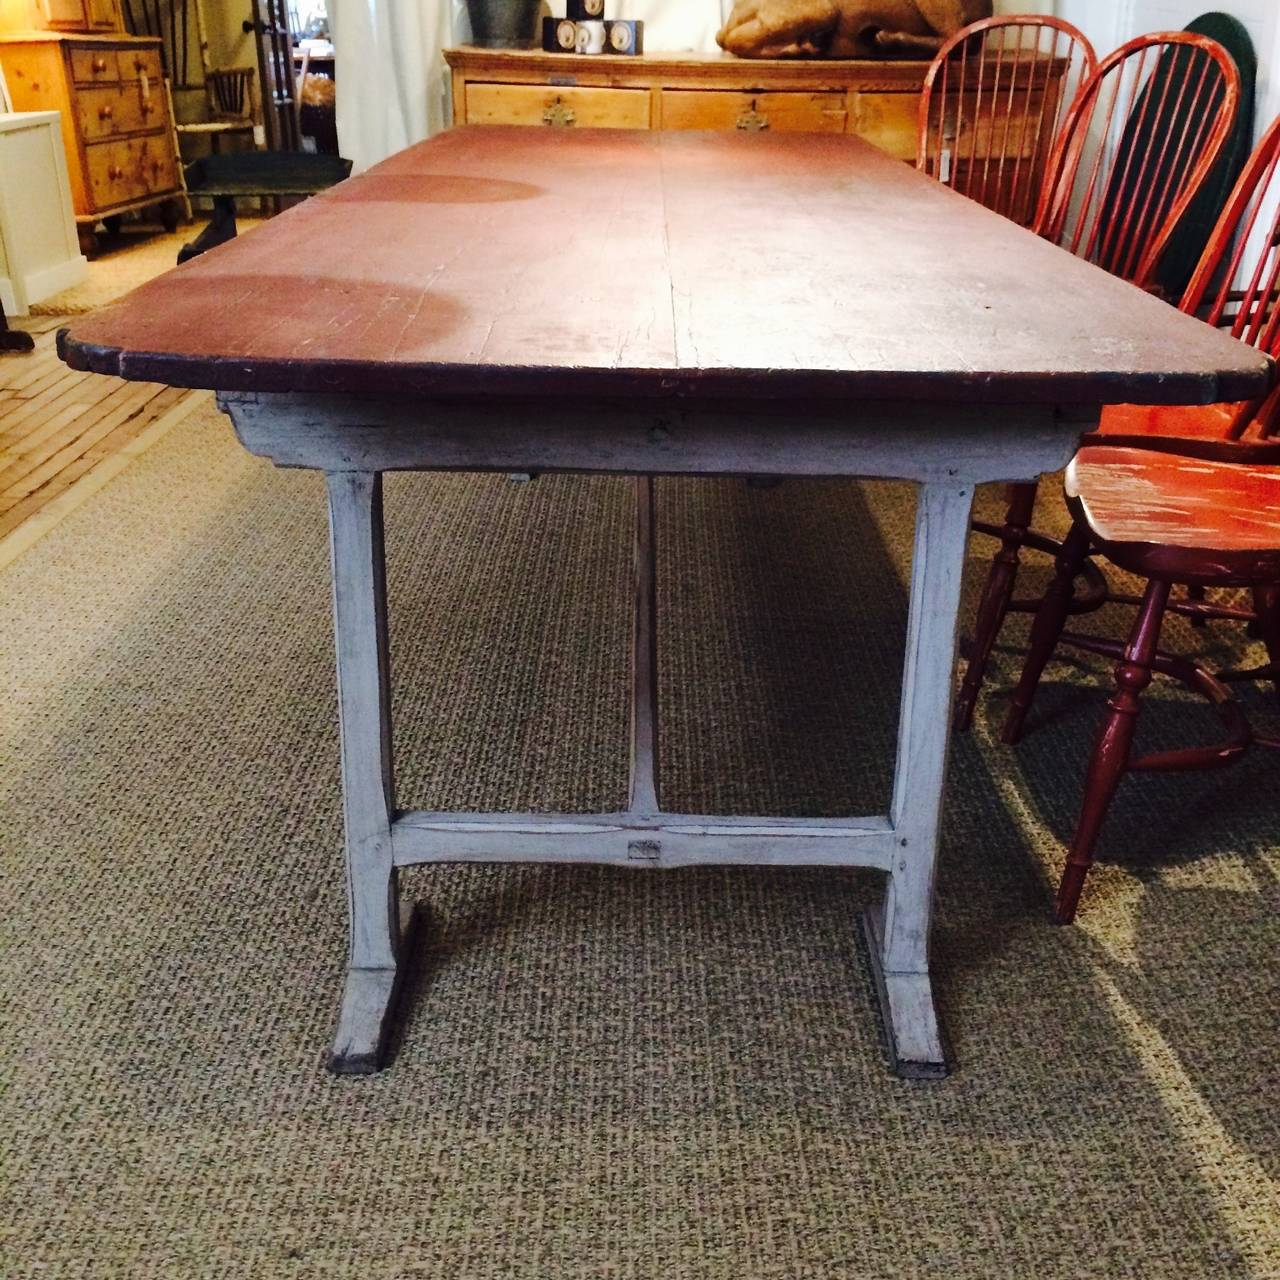 19th Century Dining Table likely Canadian For Sale at 1stdibs